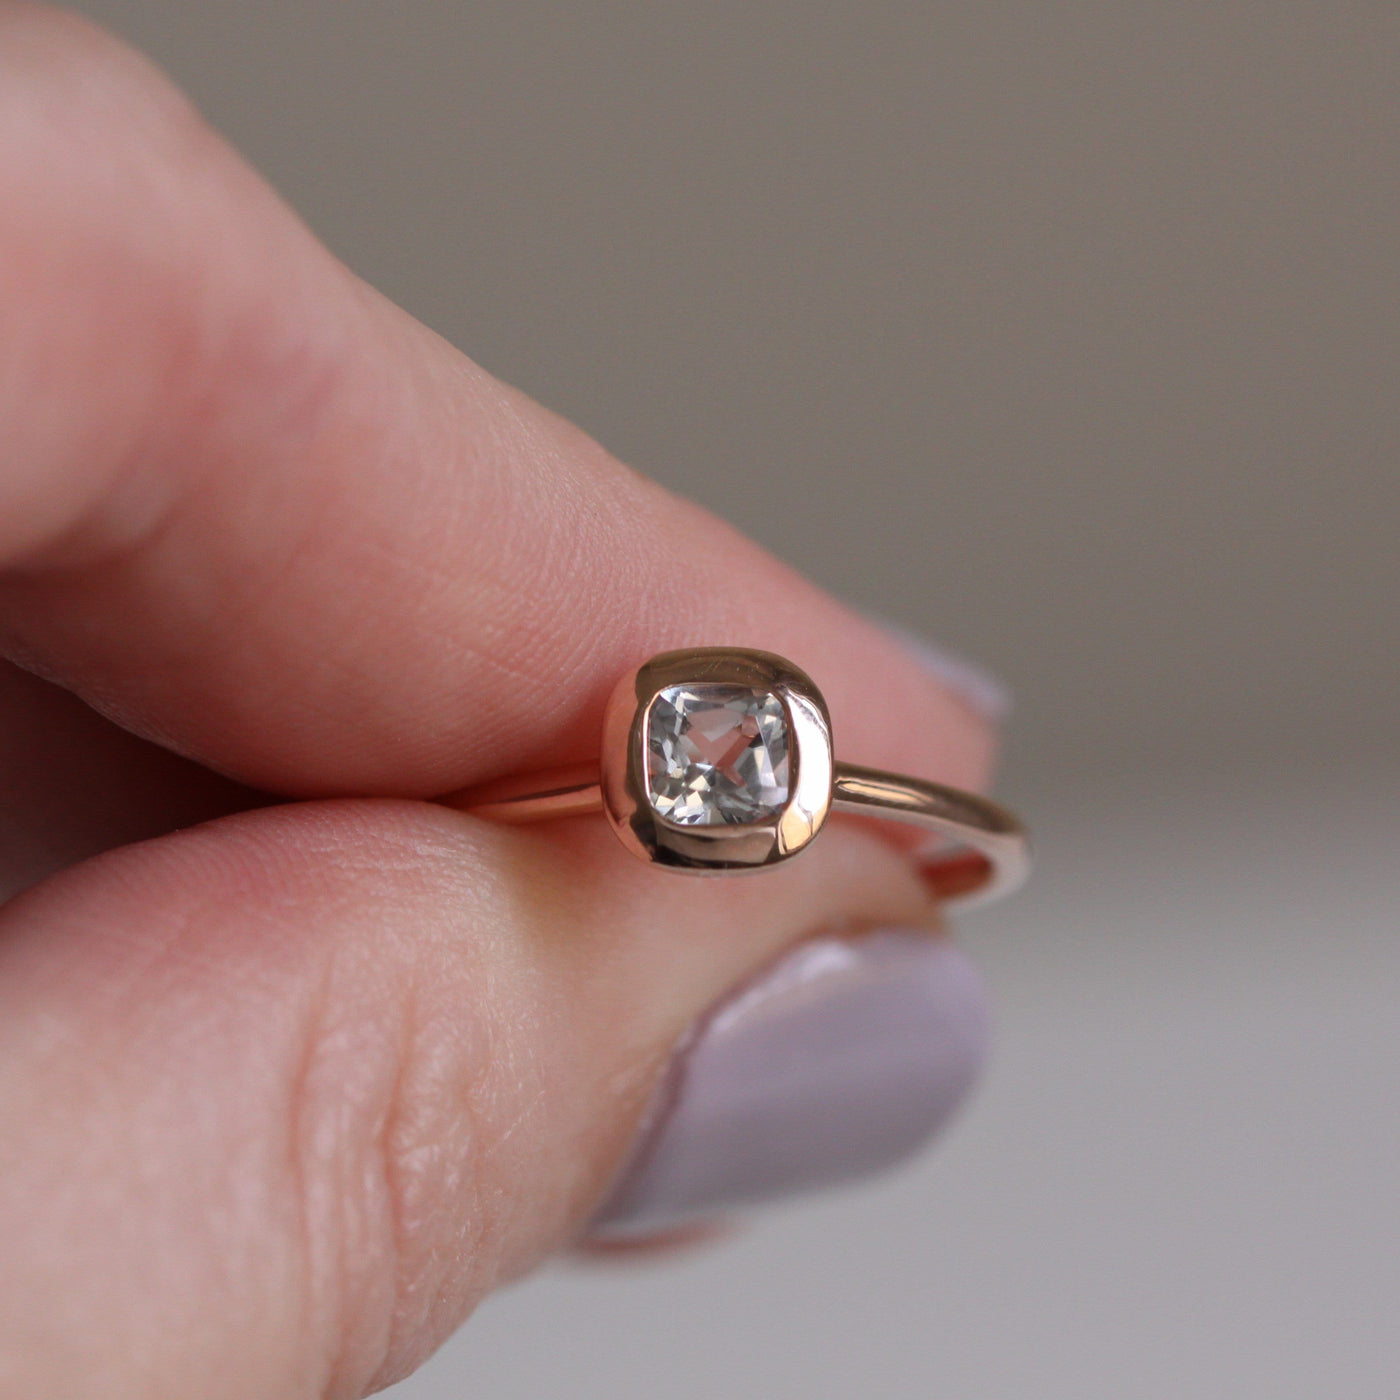 fingers holding rose gold ring with white topaz centre stone